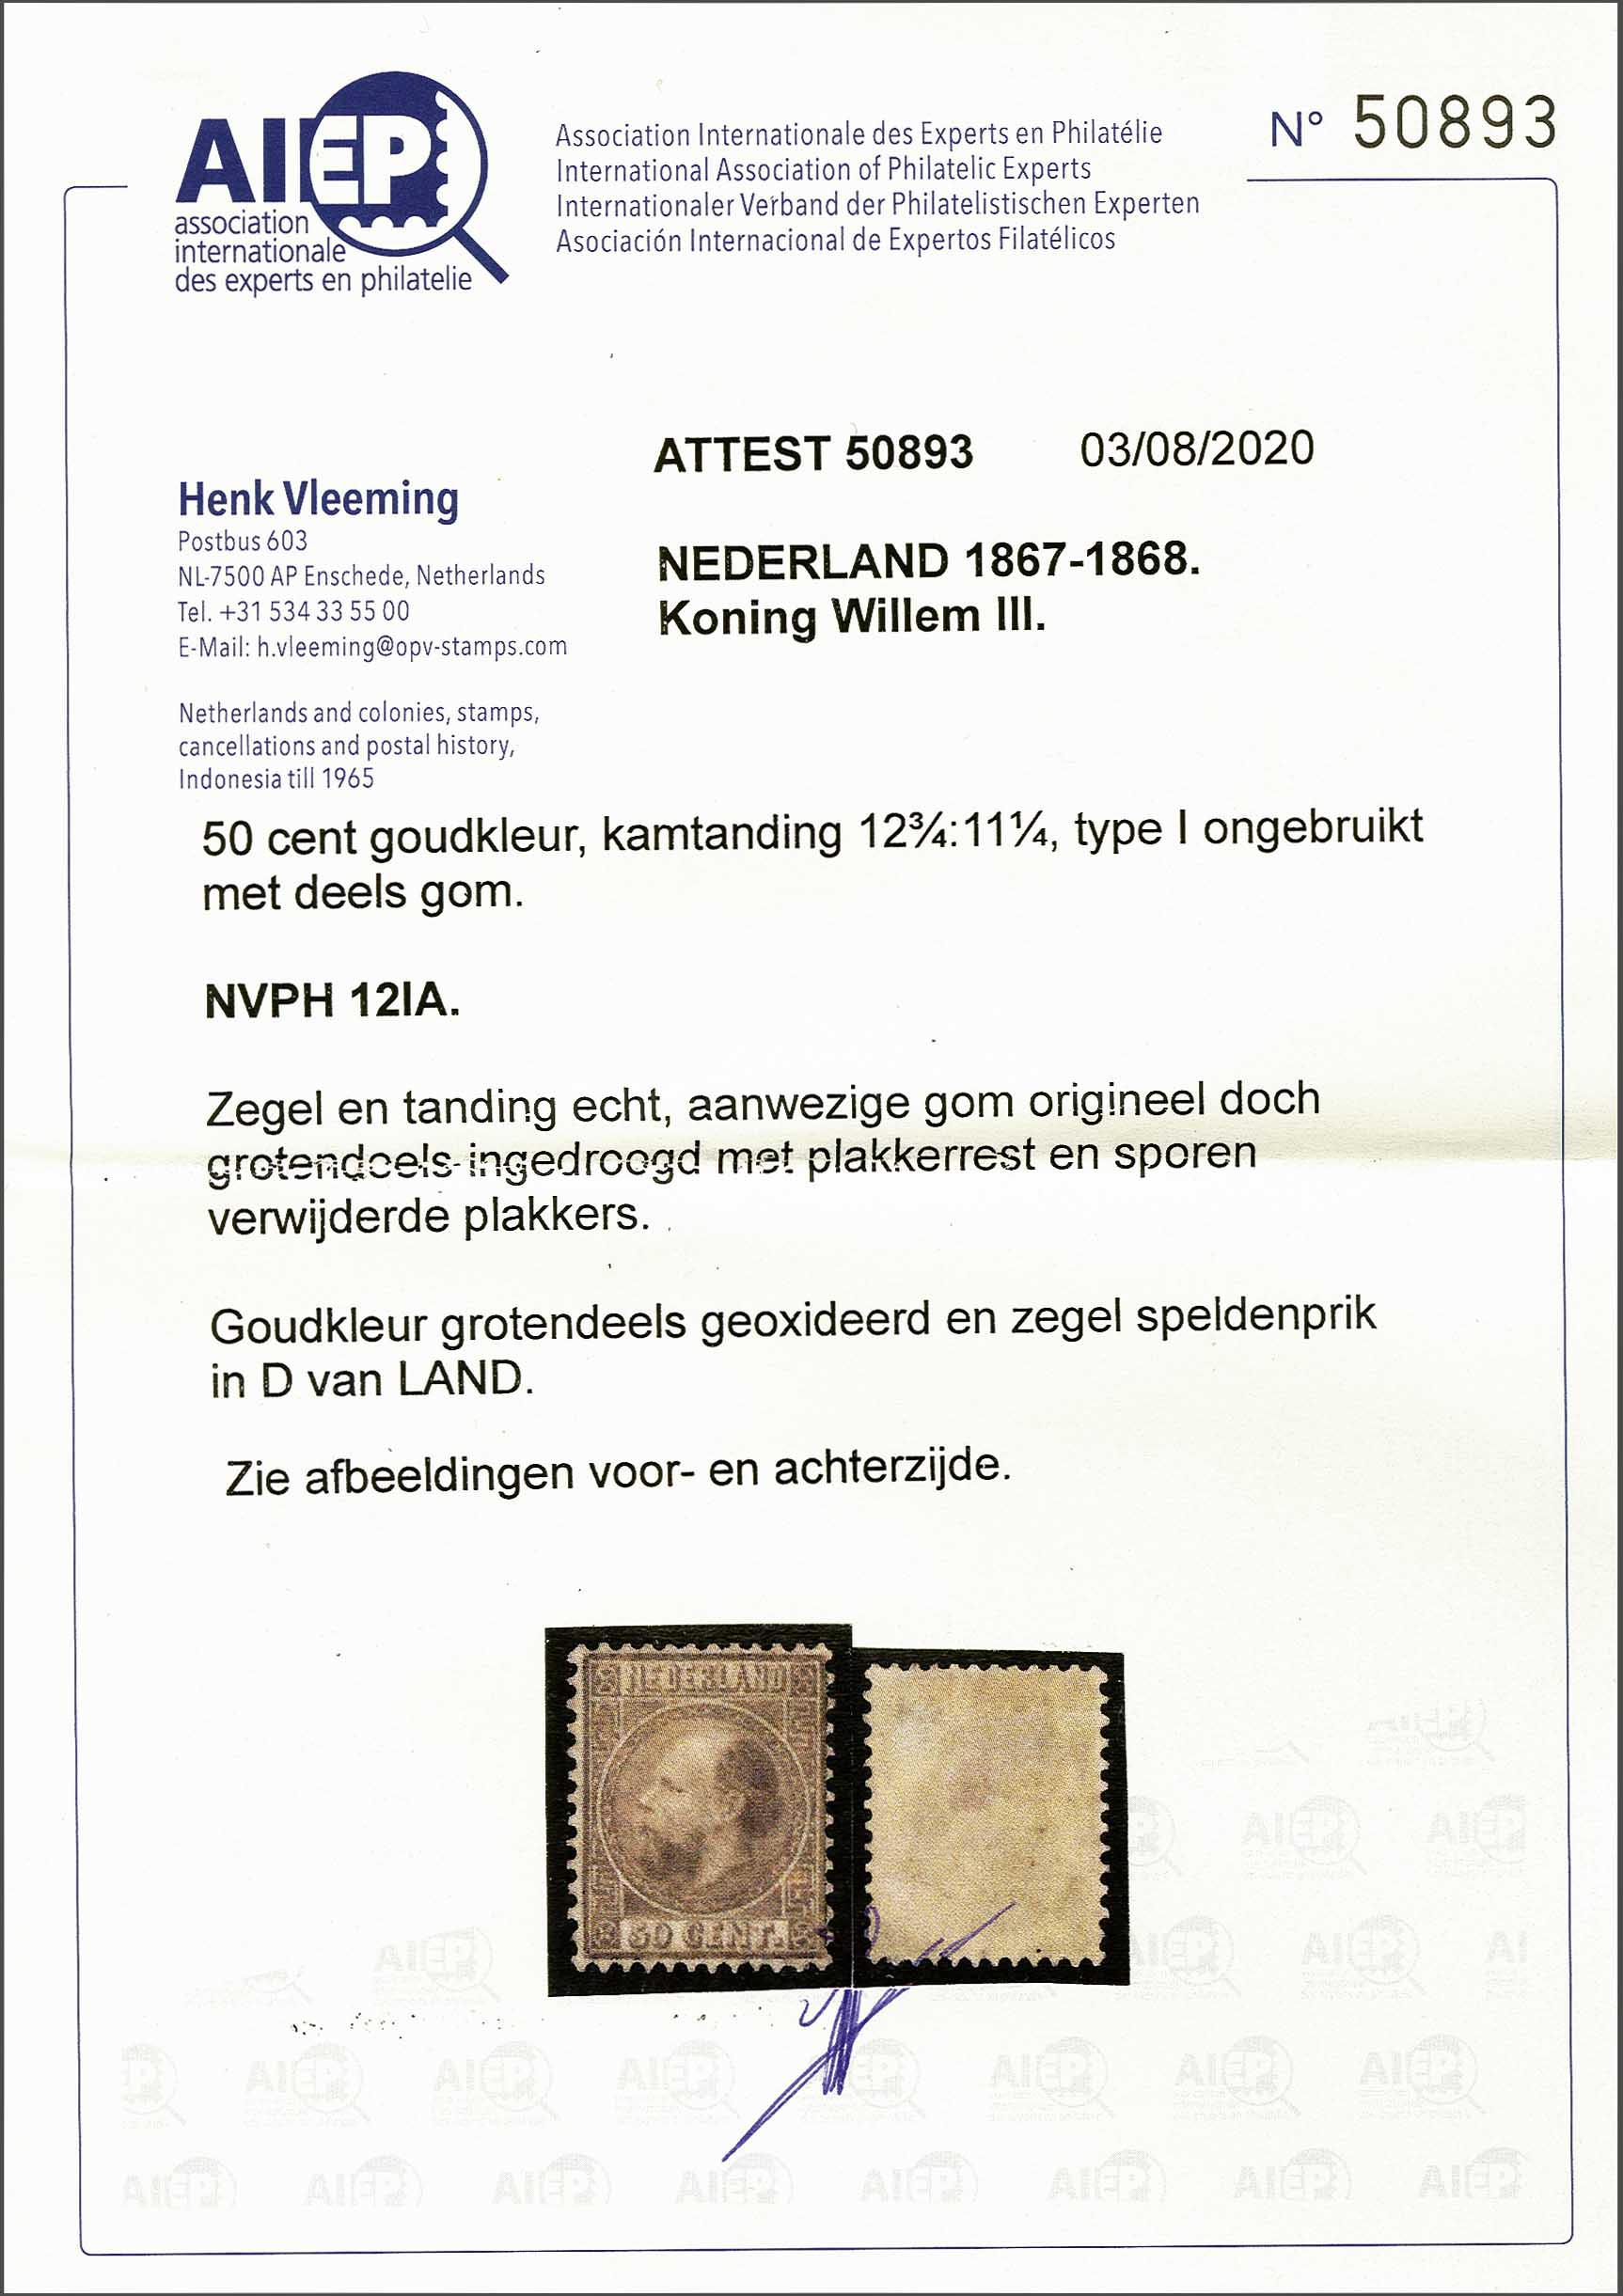 Lot 1757 - Netherlands and former colonies NL 1867 King William III -  Corinphila Veilingen Auction 245-246 Day 3 - Netherlands and former colonies - Single lots, Collections and lots, Boxes and literature